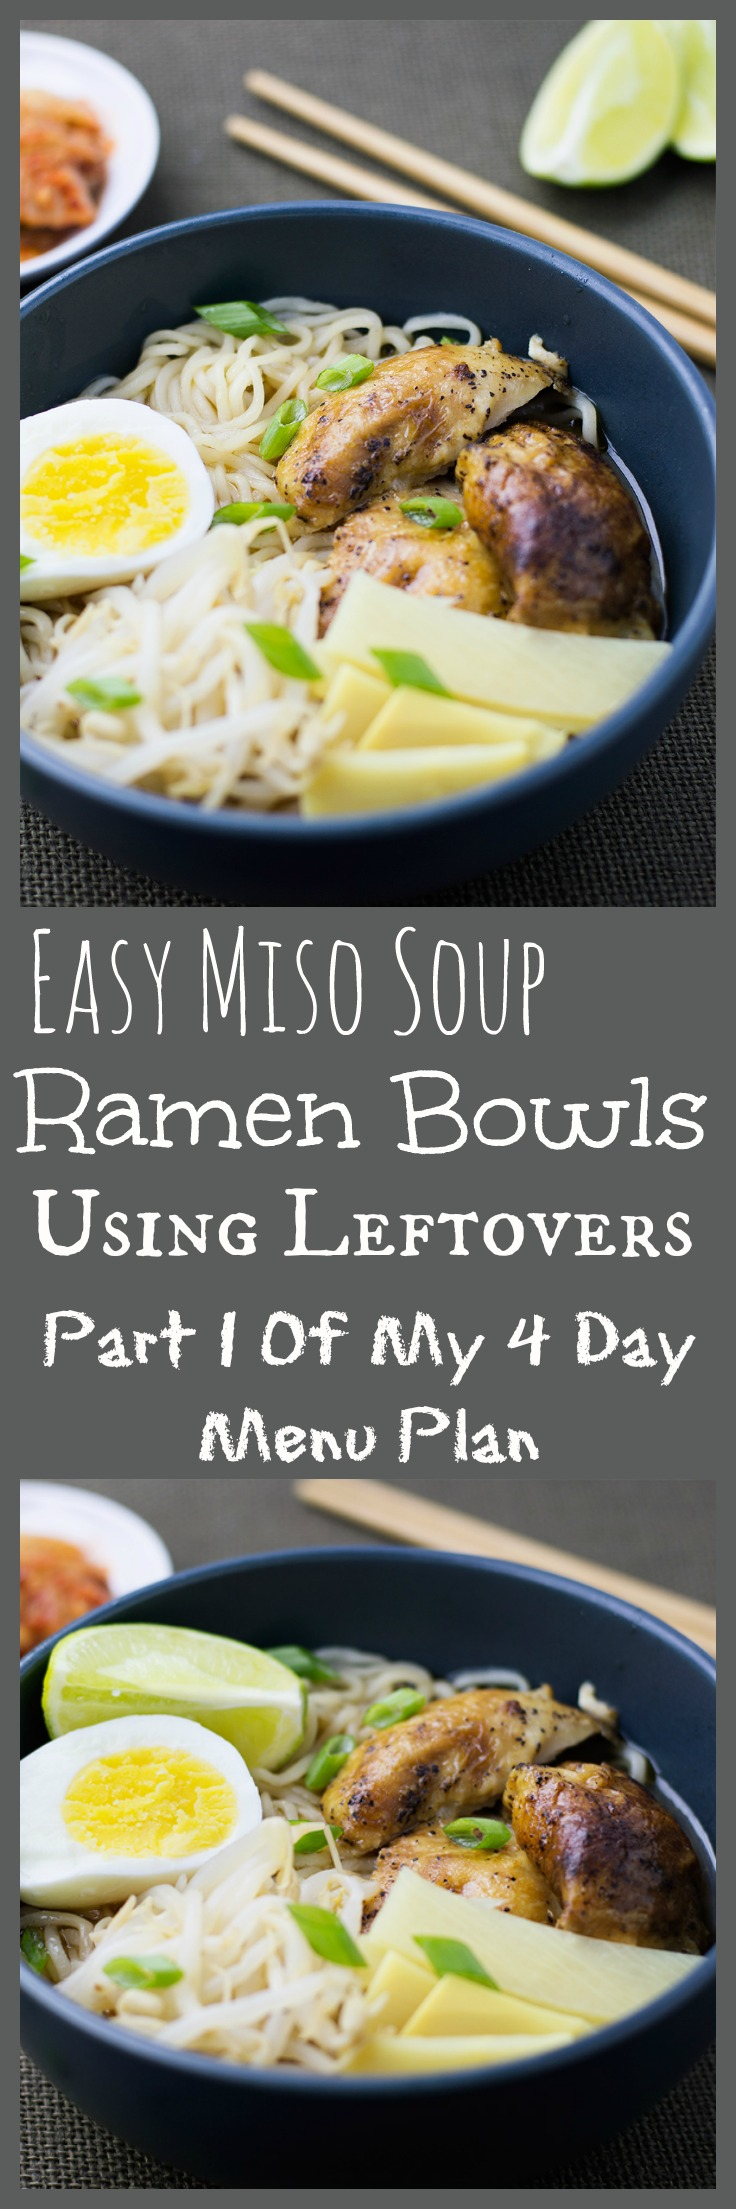 Easy Comforting Homemade Miso Soup Ramen Bowls Using Leftovers Part of My Easy 4 day Menu Plan Using Leftovers